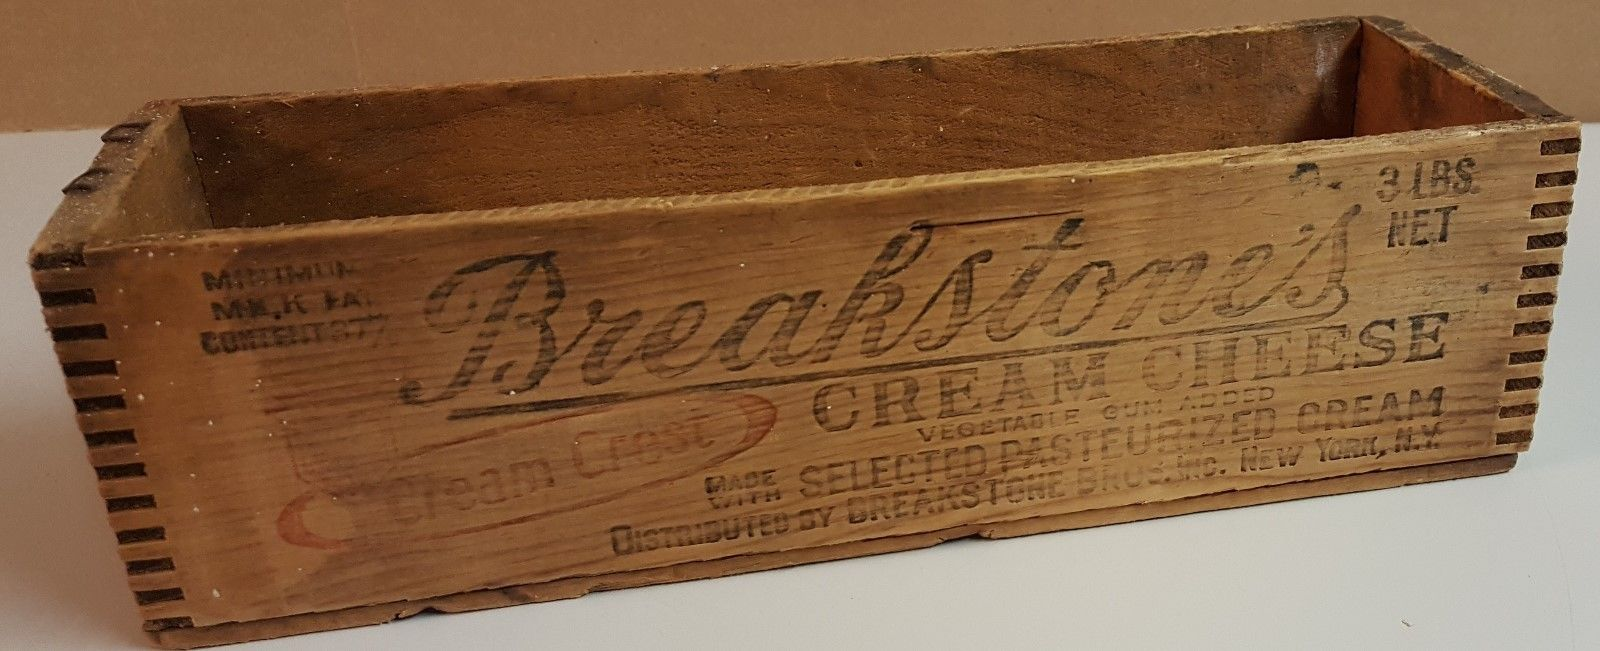 Vintage Breakstone's Cream Cheese Wood Box Crate Graphics Advertising New York 1